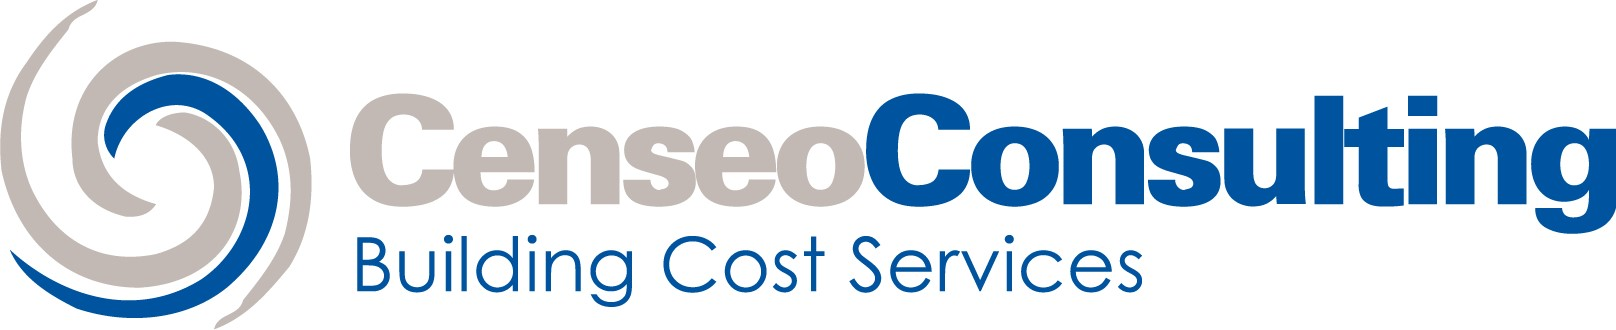 Censeo Consulting